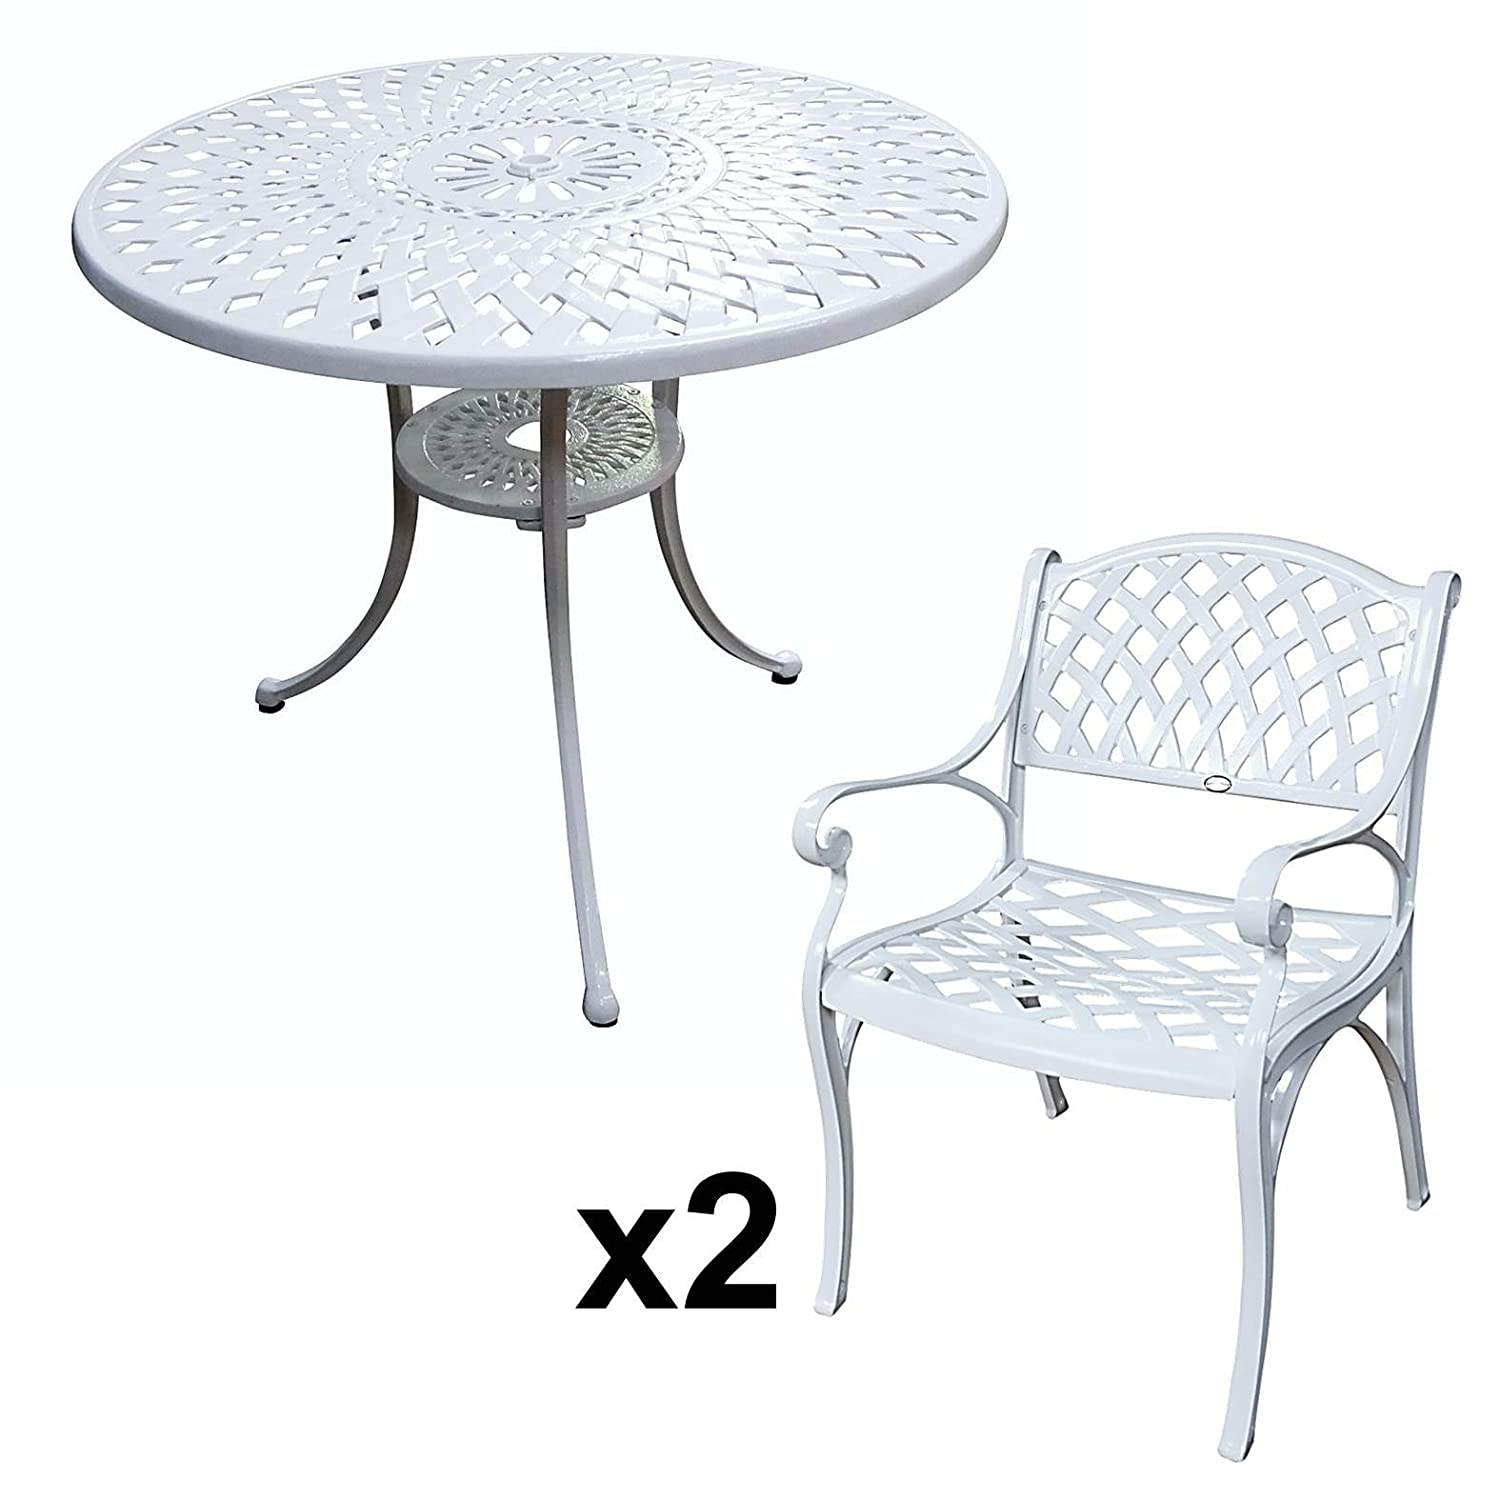 lazy susan mia 90 cm runder gartentisch mit 2 st hlen gartenm bel set aus metall wei kate. Black Bedroom Furniture Sets. Home Design Ideas